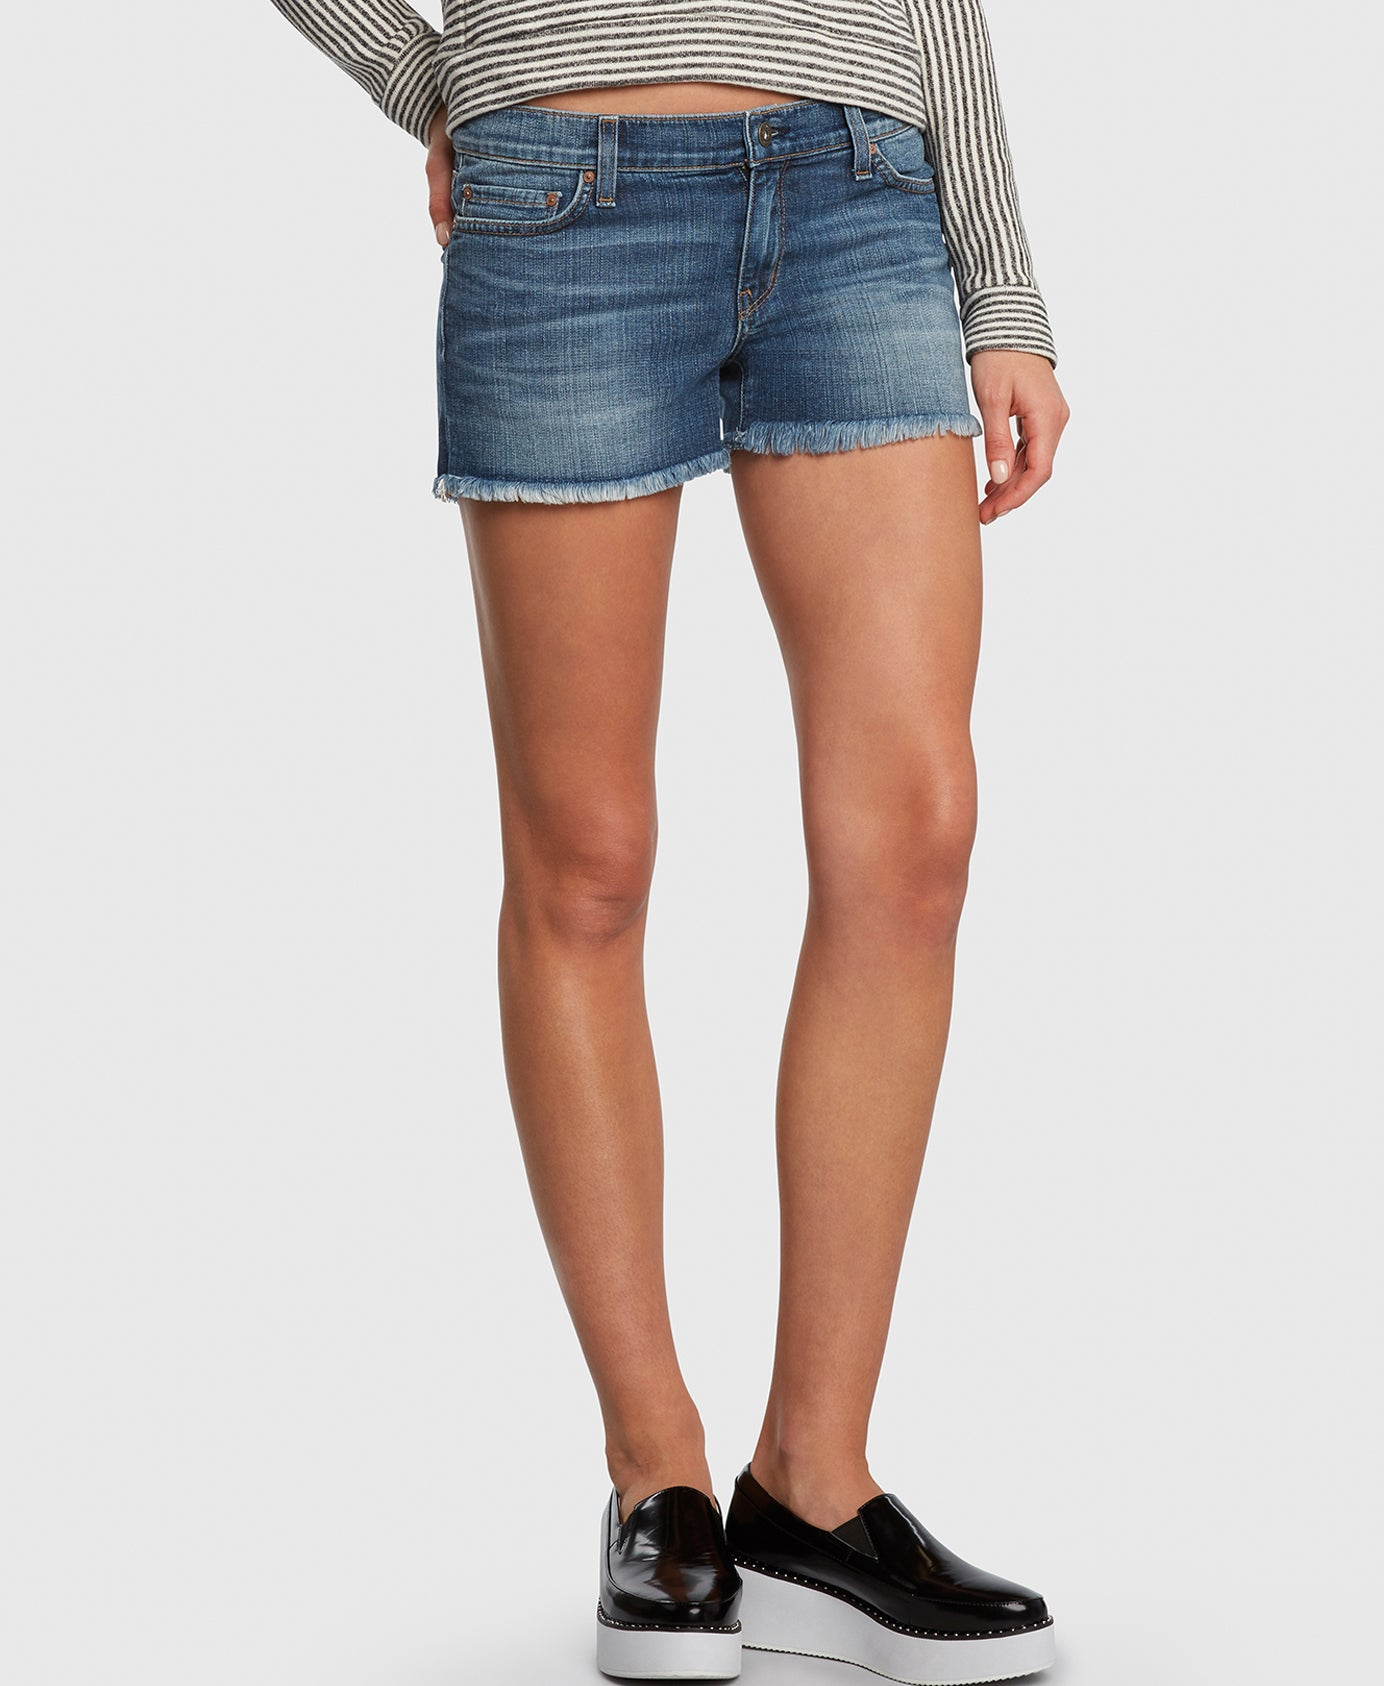 WANDERER in Bad Romance denim shorts detail